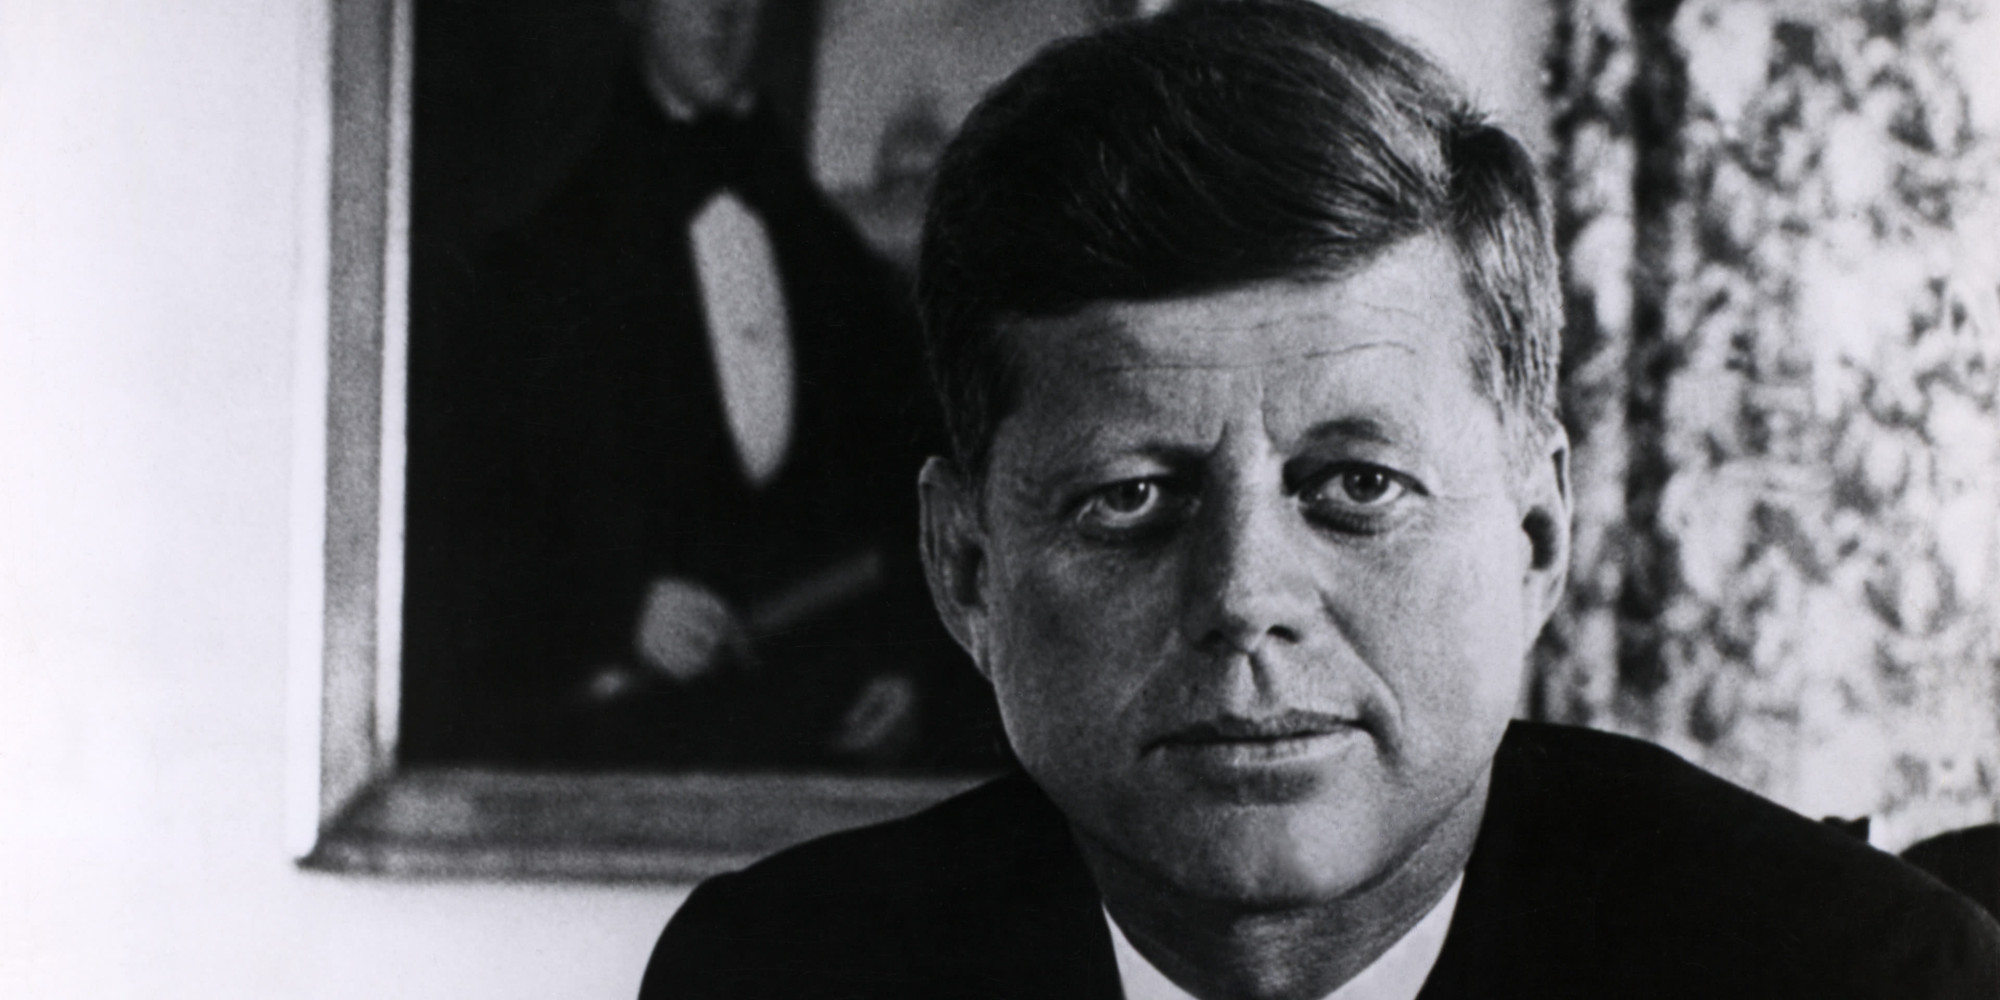 an introduction to the life and legacy by president john f kennedy In a video made in partnership with the john f kennedy library in honor 27, and jack, 24 —remember president kennedy's legacy i've thought about him and missed him every day of my life, but growing up without him was made easier thanks to all of the people who kept him in their.